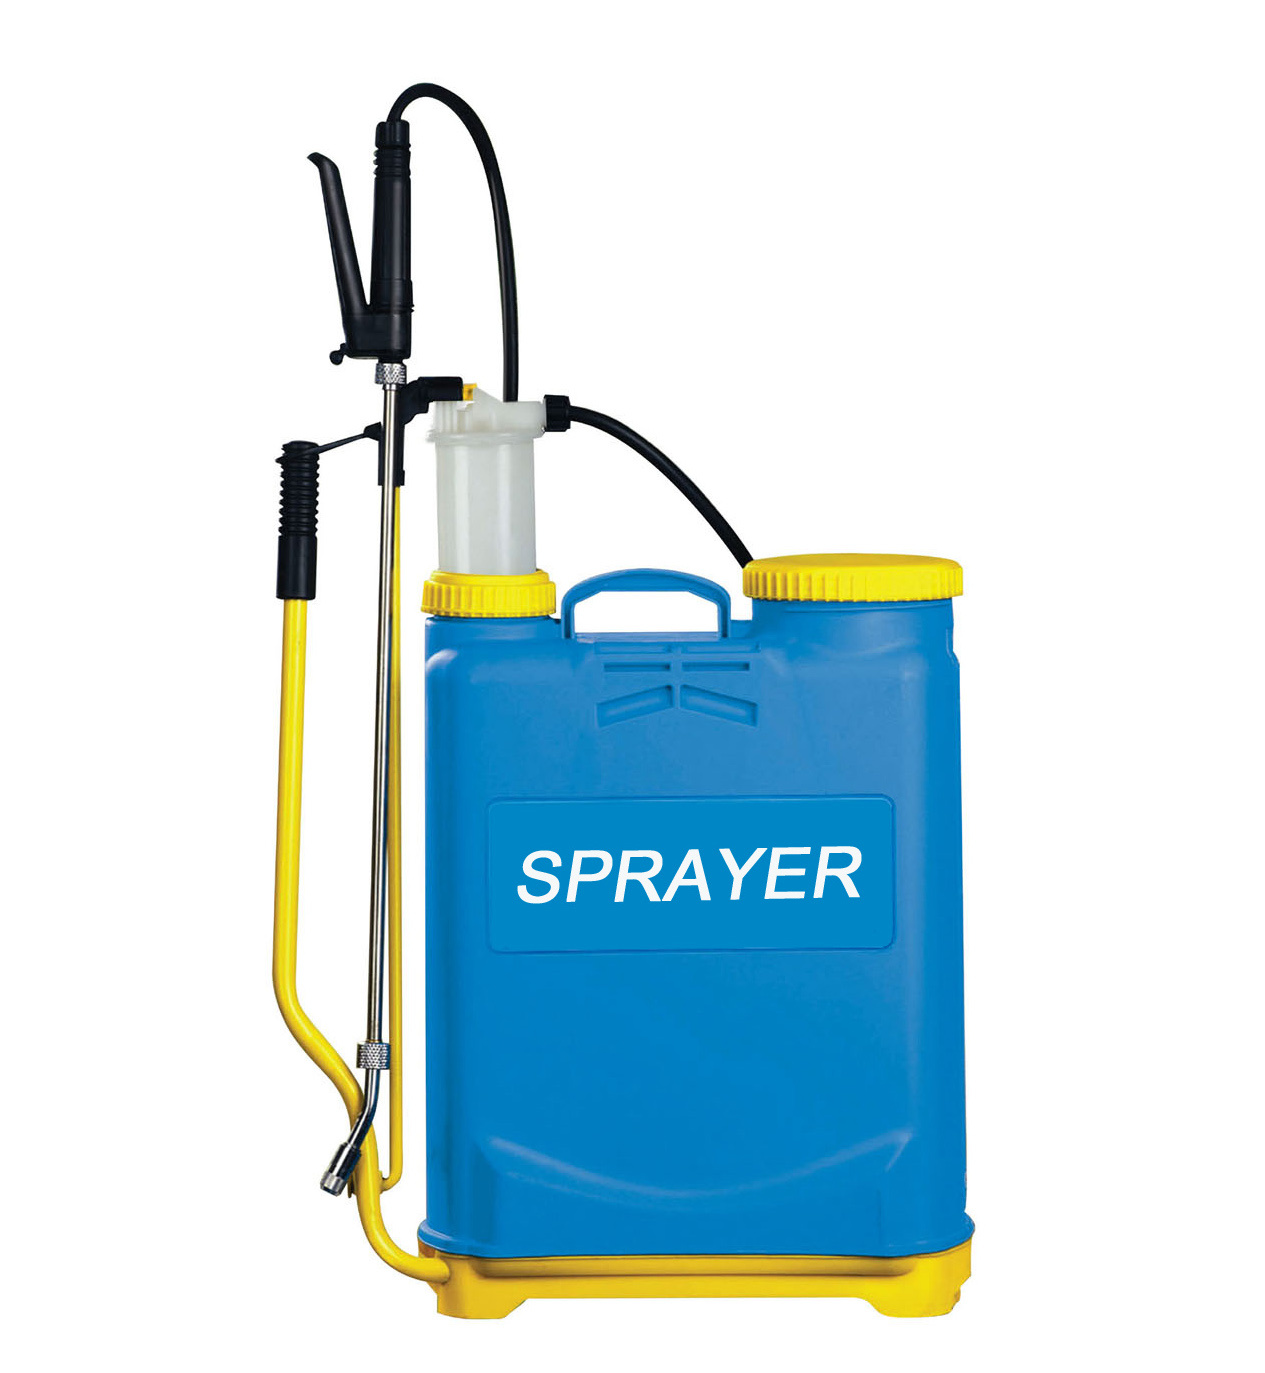 Knapsack Sprayer, Hand Sprayer, Manual Sprayer (Backpack Sprayer Matabi Sprayer) Agros Sprayer (AM-S18)